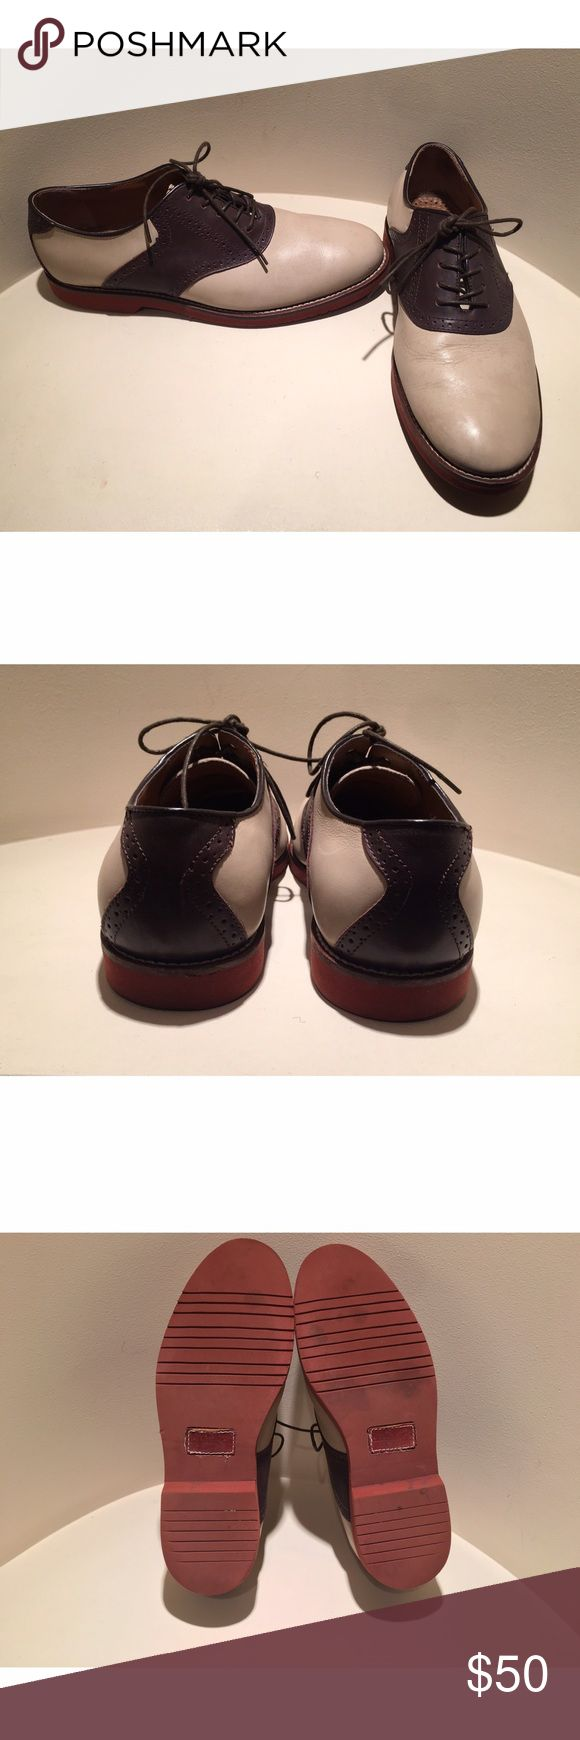 Mens Wingtip Shoes •tan and brown wingtip shoes •gently used condition •no damage Shoes Oxfords & Derbys